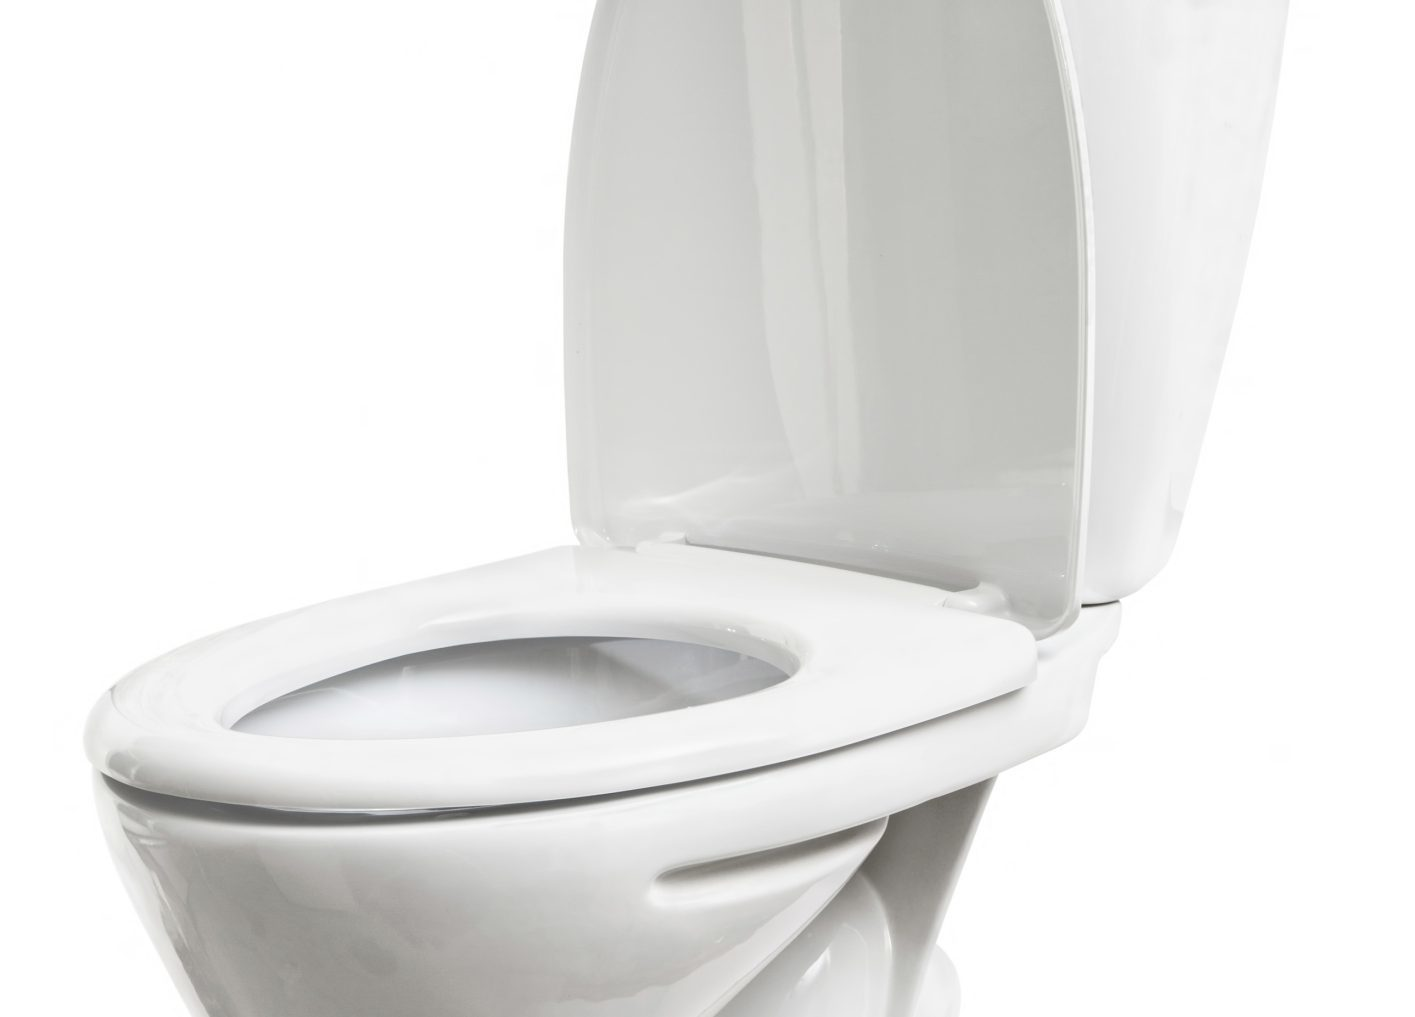 The group aims to help provide clean and safe toilet facilities for girls in developing countries.